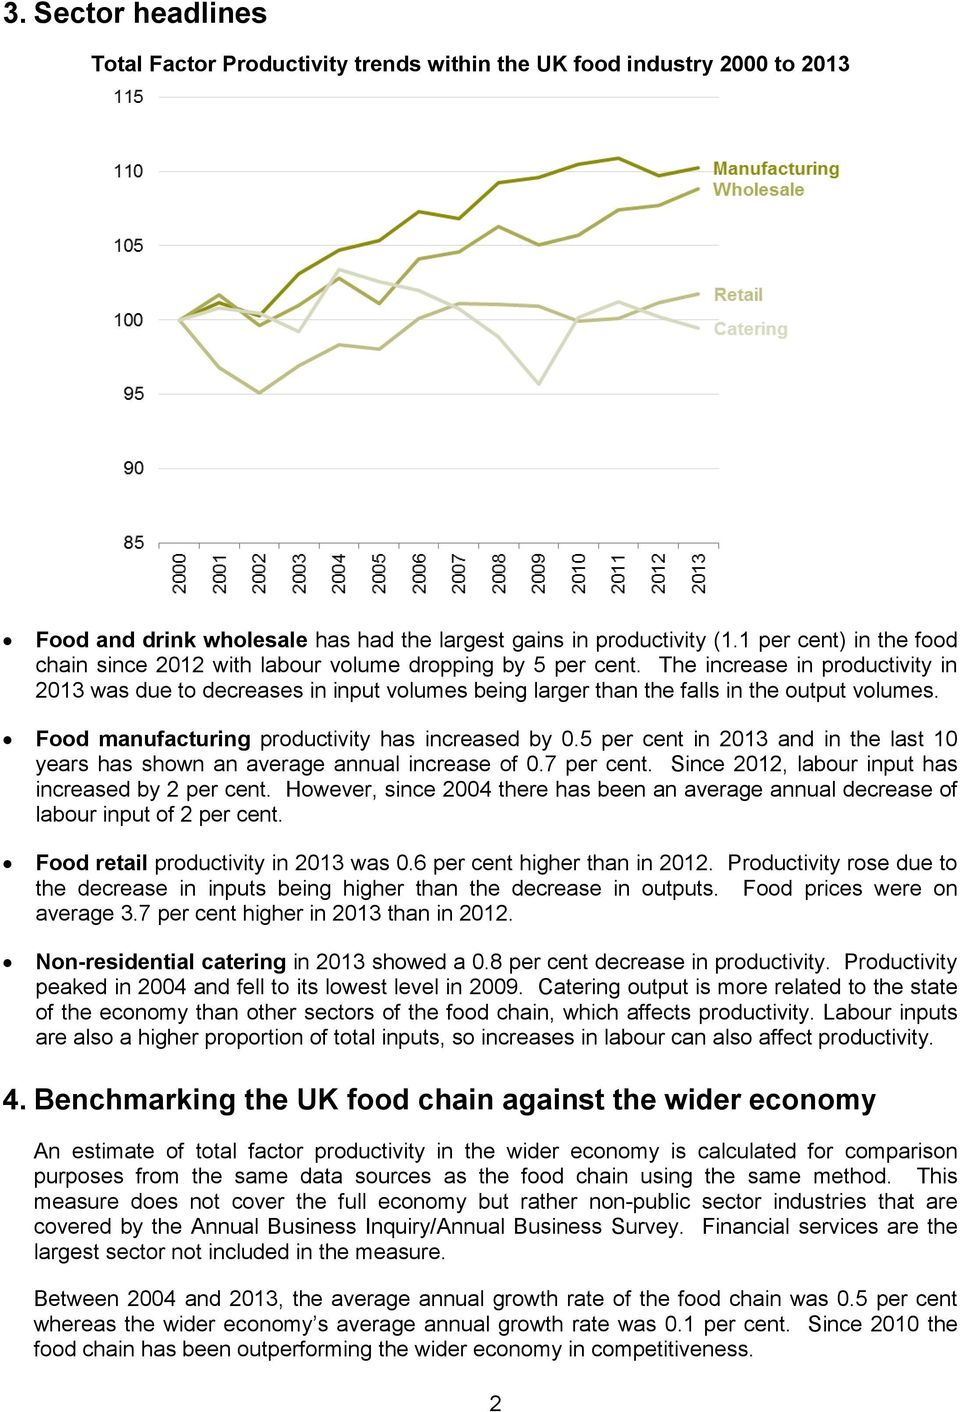 The increase in productivity in 2013 was due to decreases in input volumes being larger than the falls in the output volumes. Food manufacturing productivity has increased by 0.